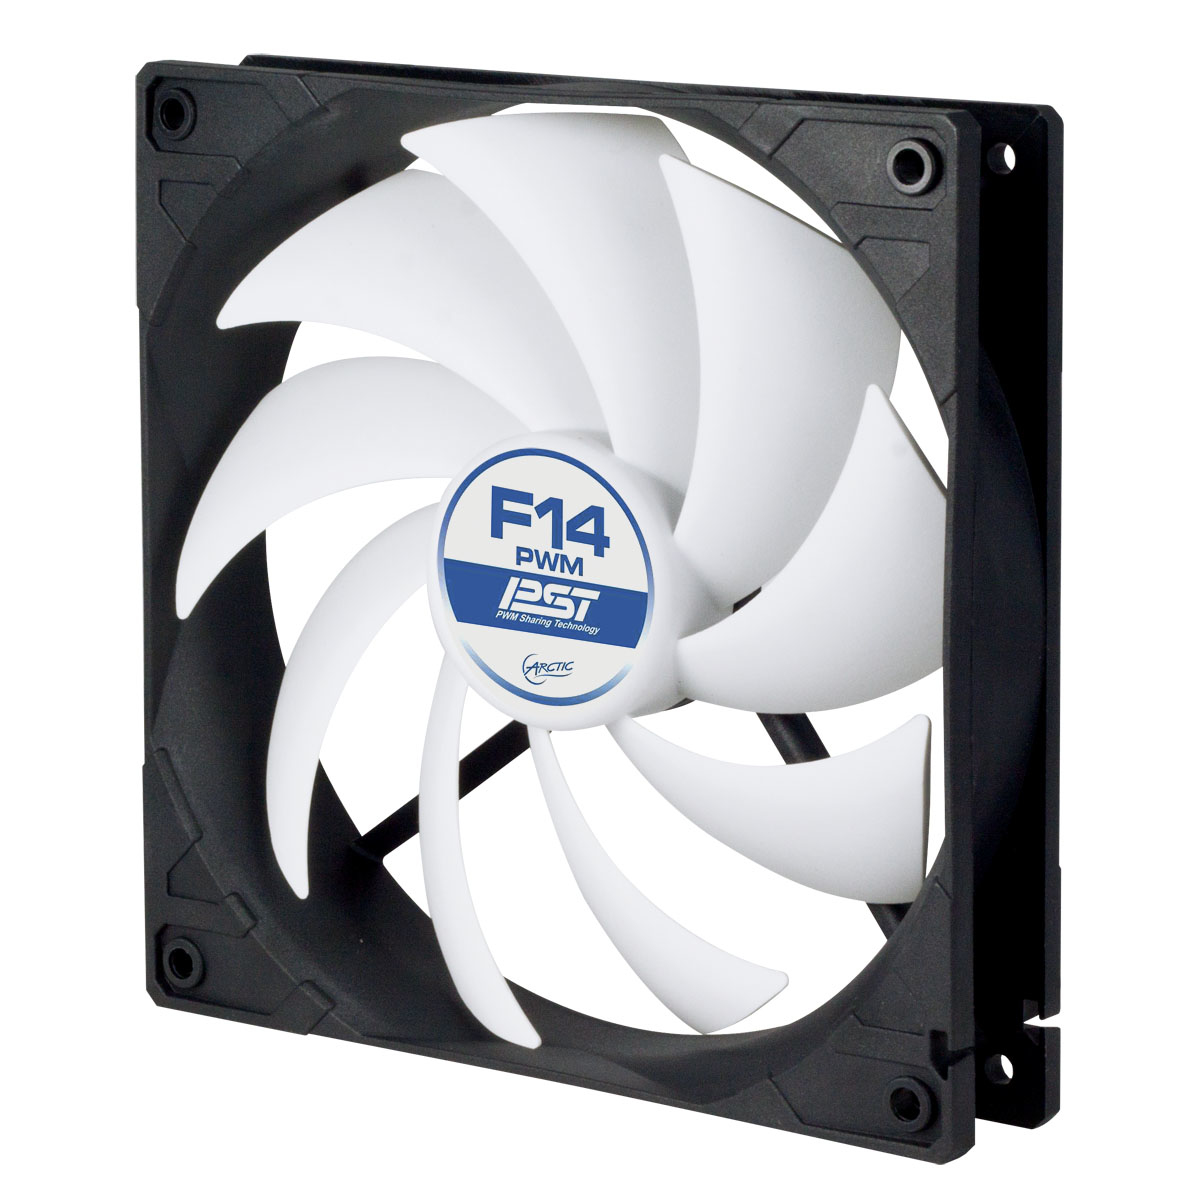 ACFAN00079A ARCTIC F14 PWM PST 4-Pin PWM fan with standard case - Ent01